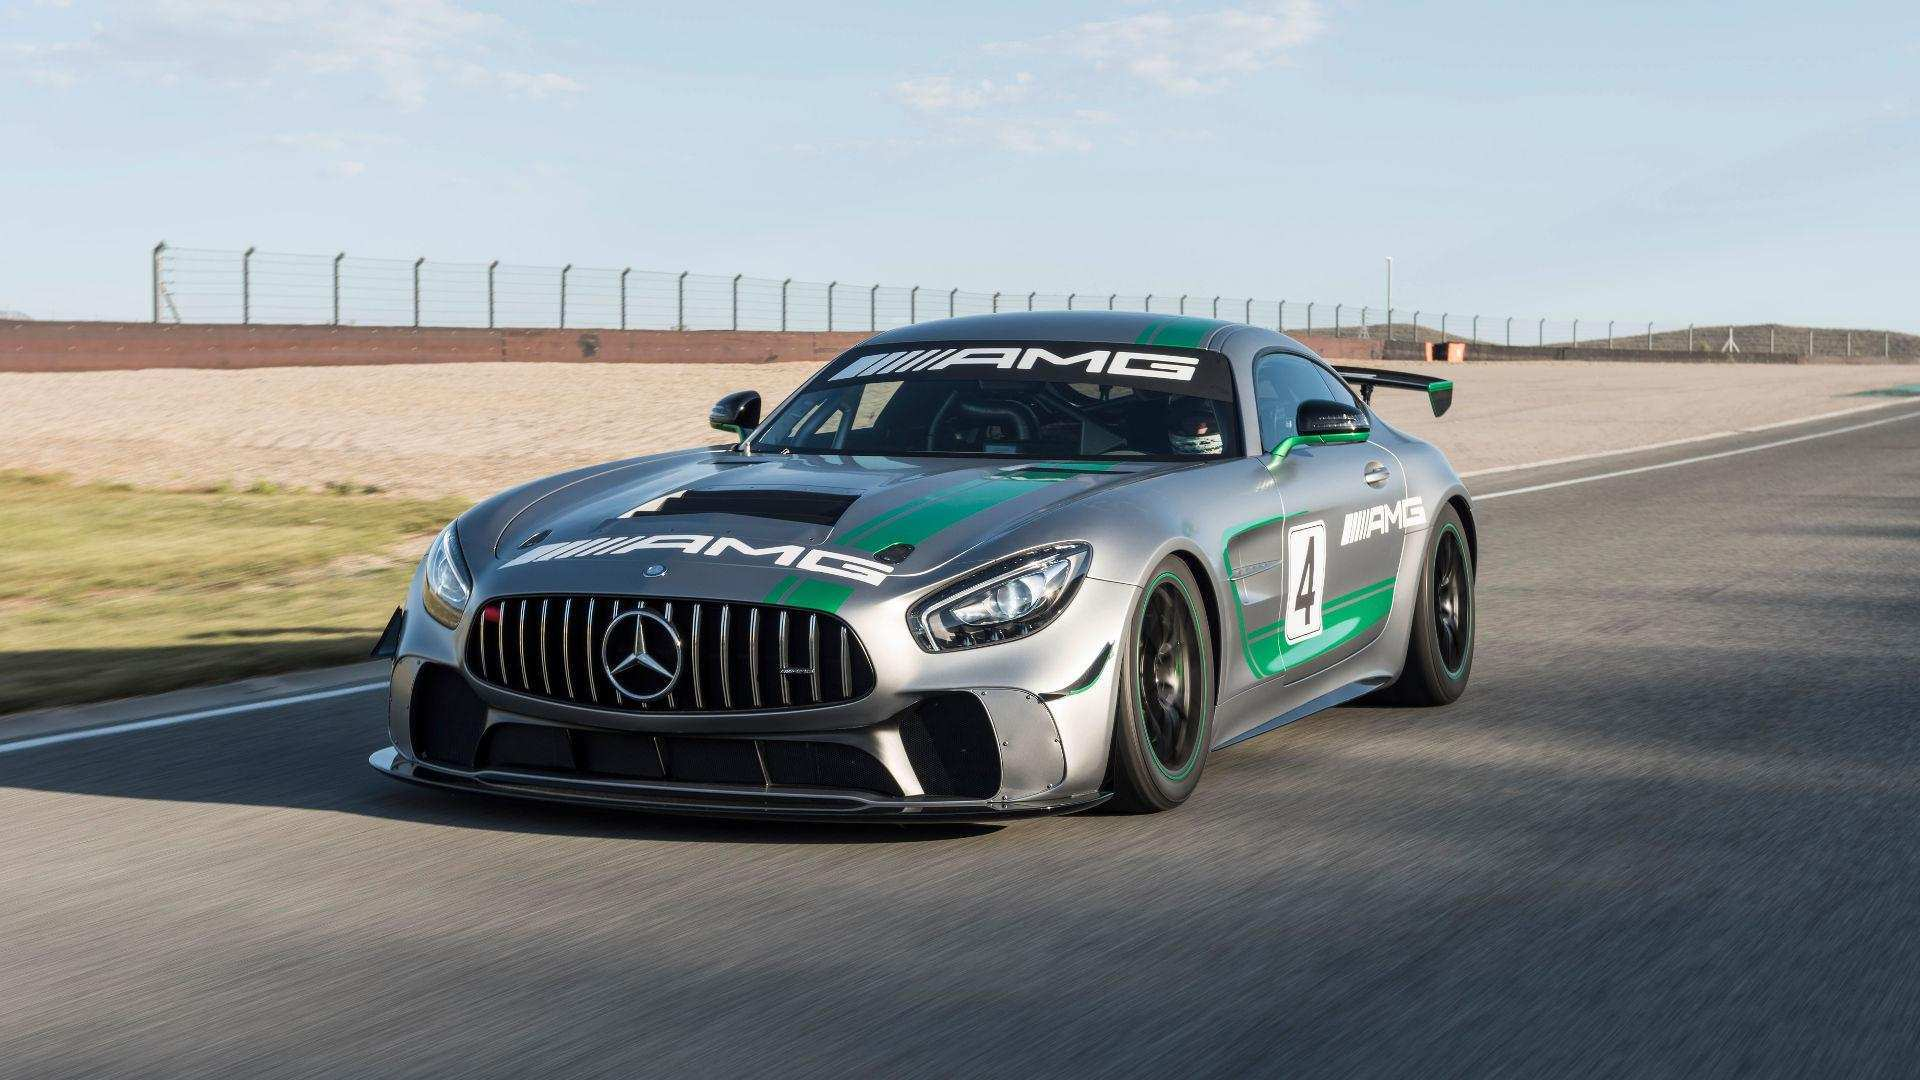 71 All New Mercedes 2019 Amg Gt4 Exterior